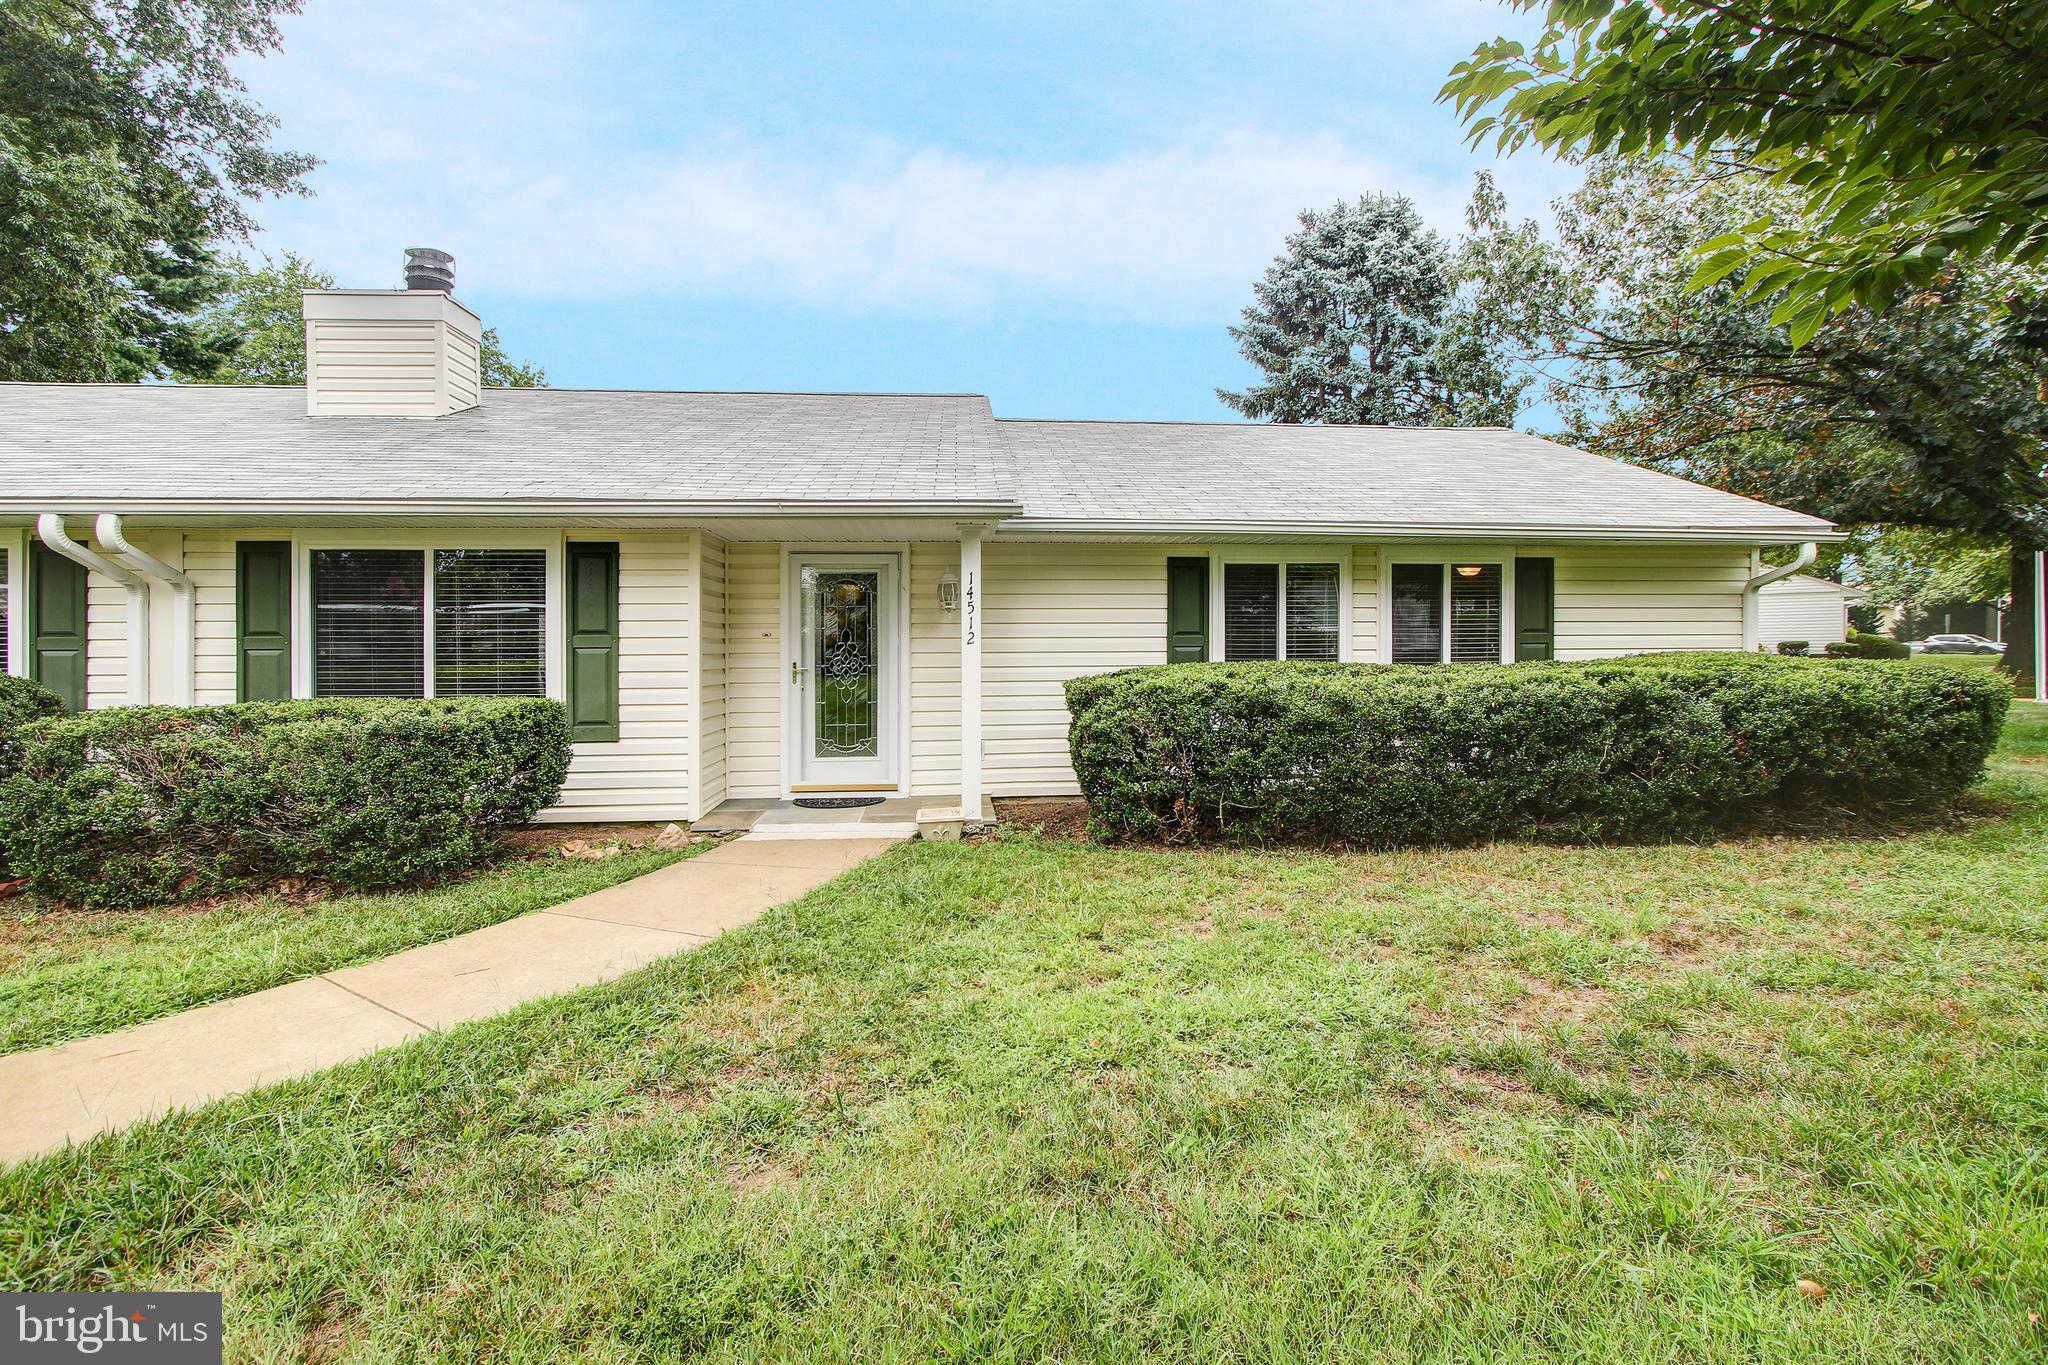 Another Property Sold - 14512 Kelmscot Drive #174-A, Silver Spring, MD 20906